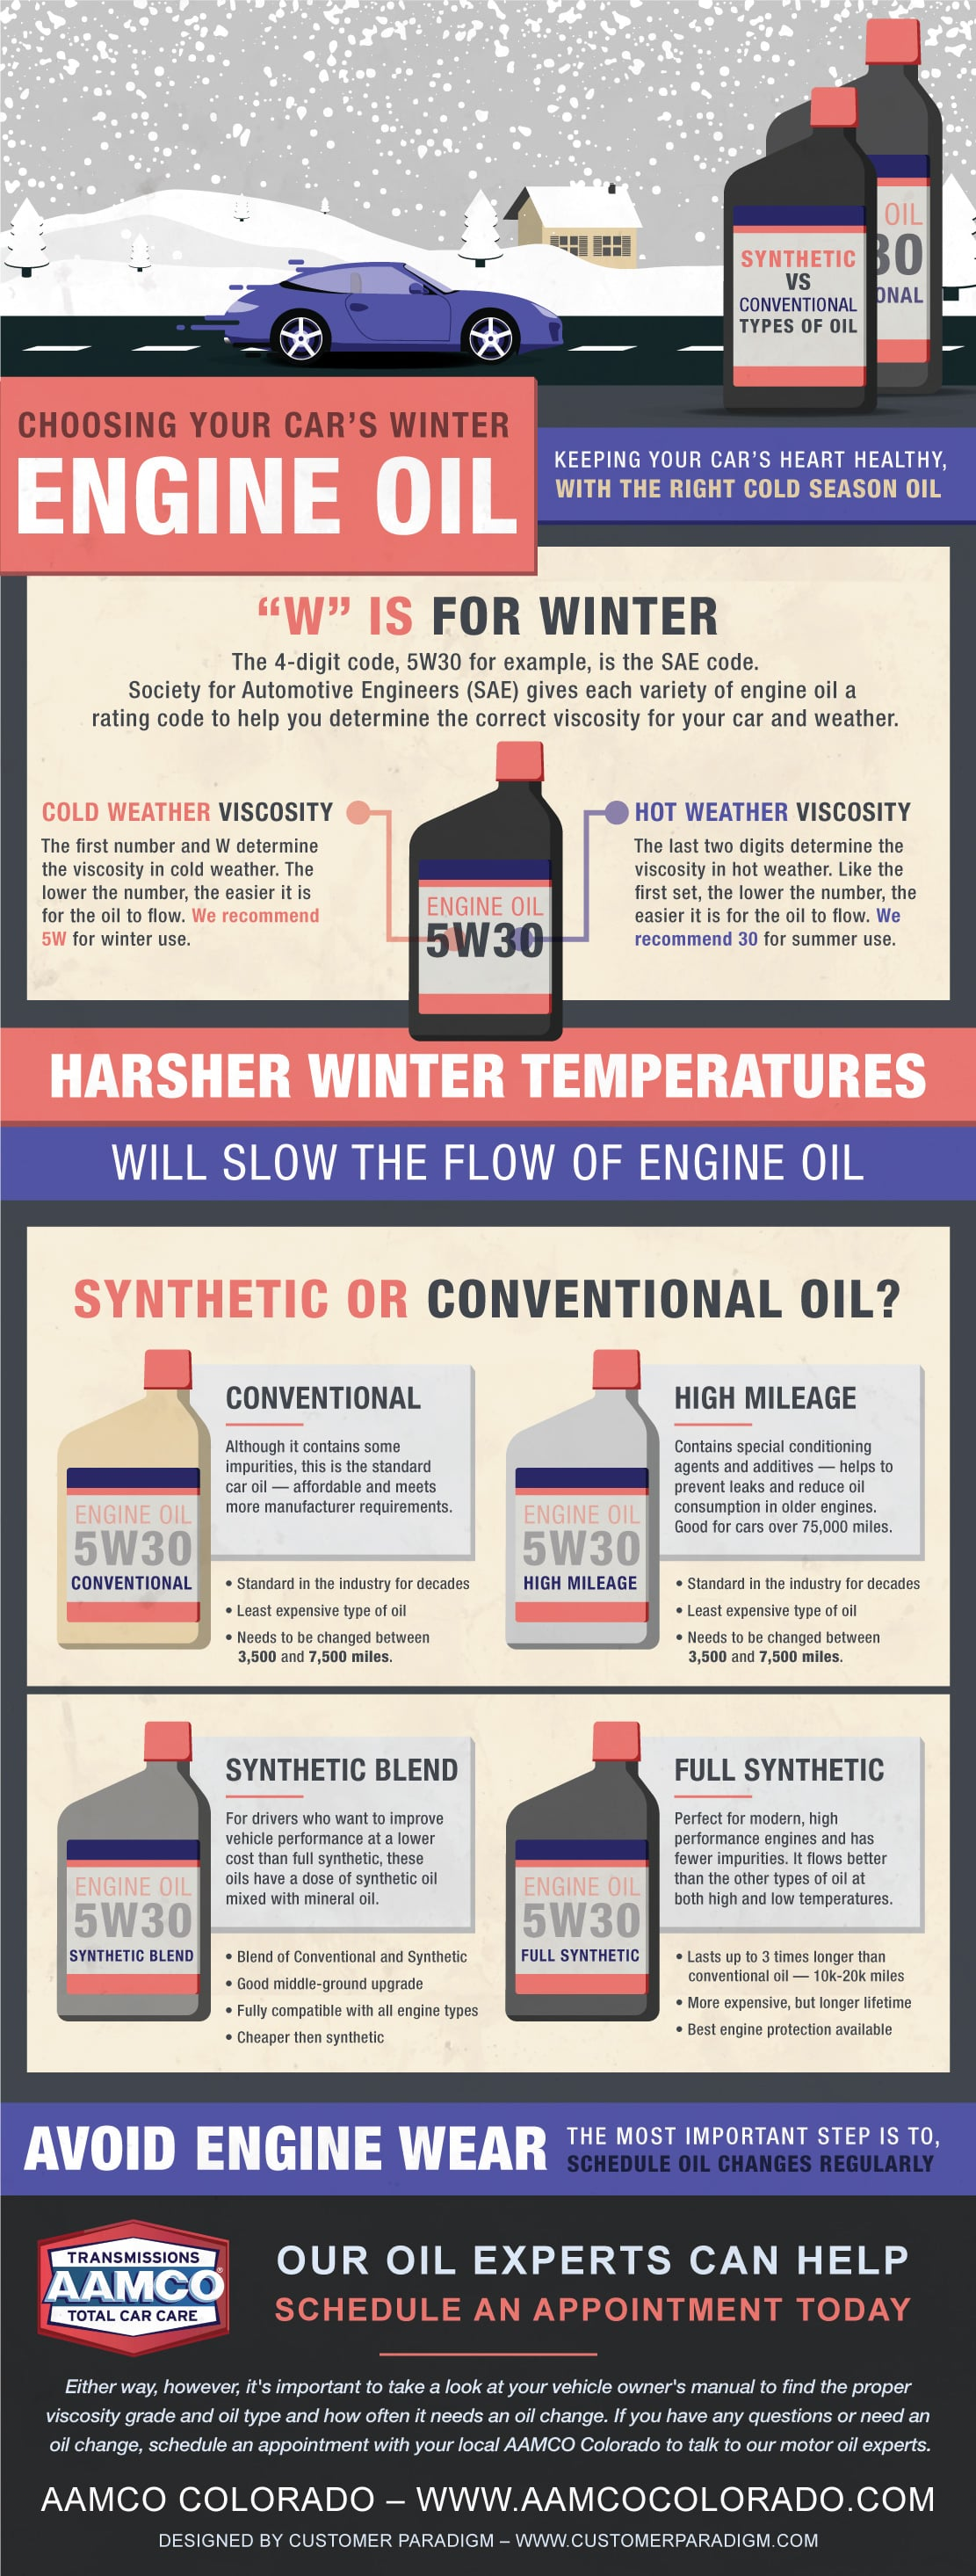 Choosing the Best Engine Oil For Winter | AAMCO Colorado